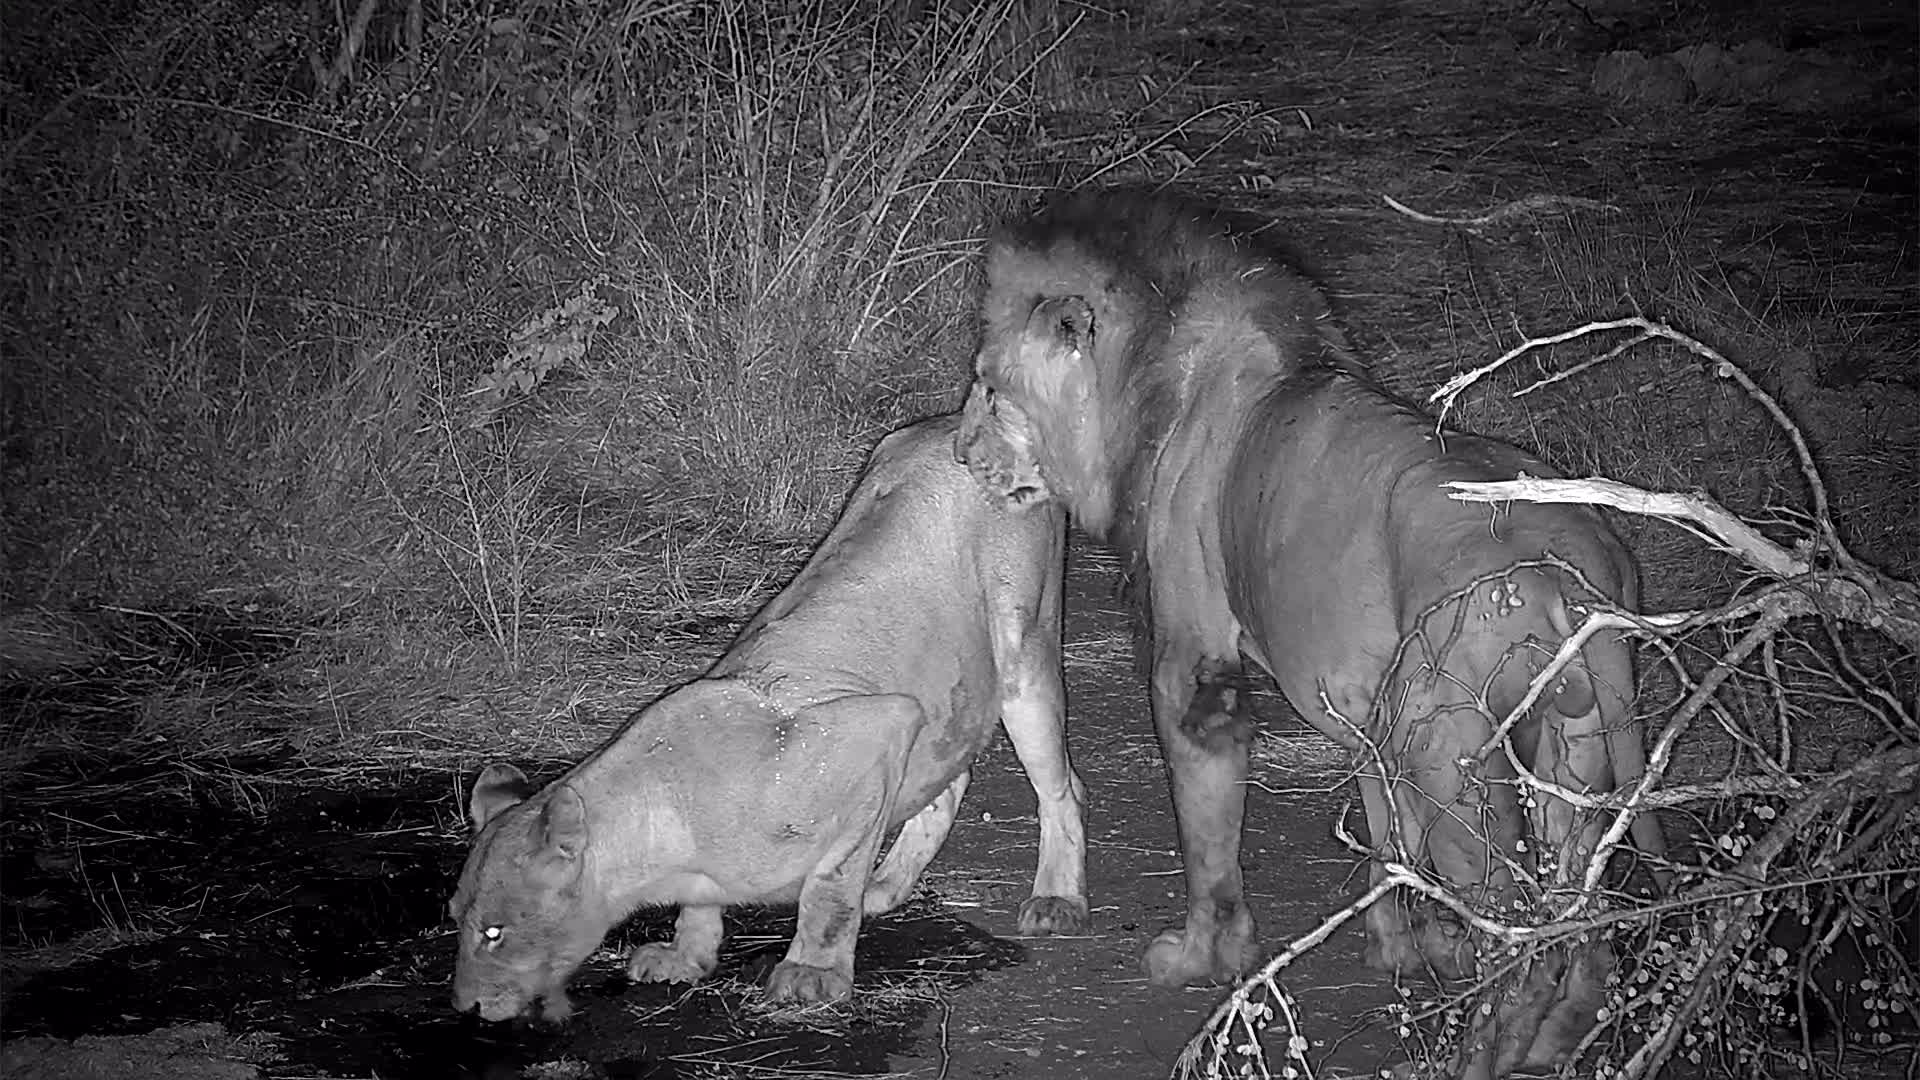 VIDEO: Large Male Lion and Female